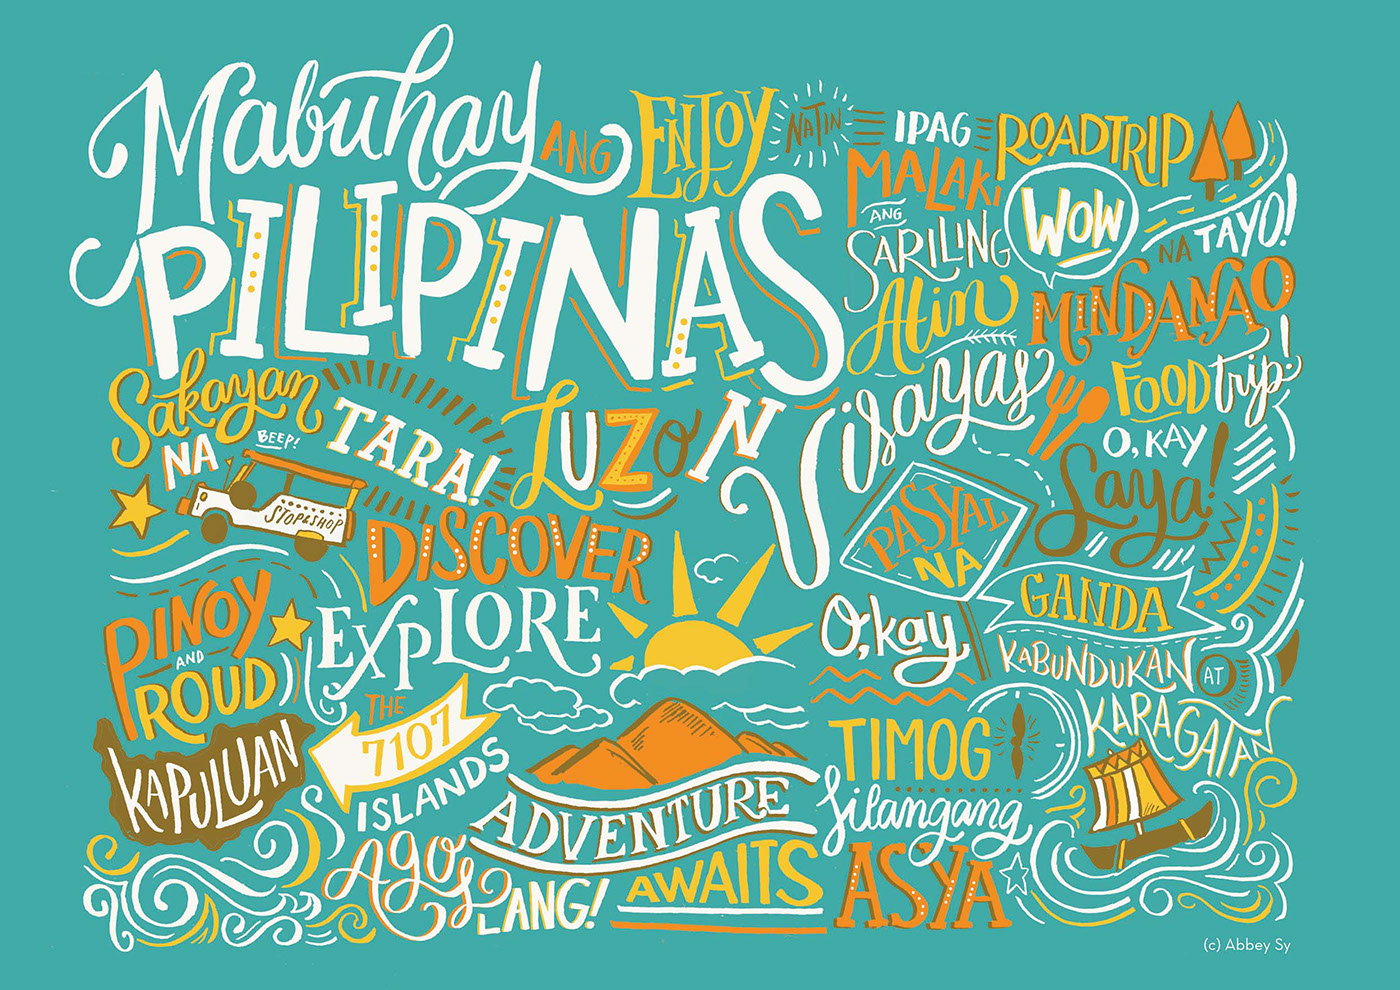 Havaianas Filipinas 2015 on Behance